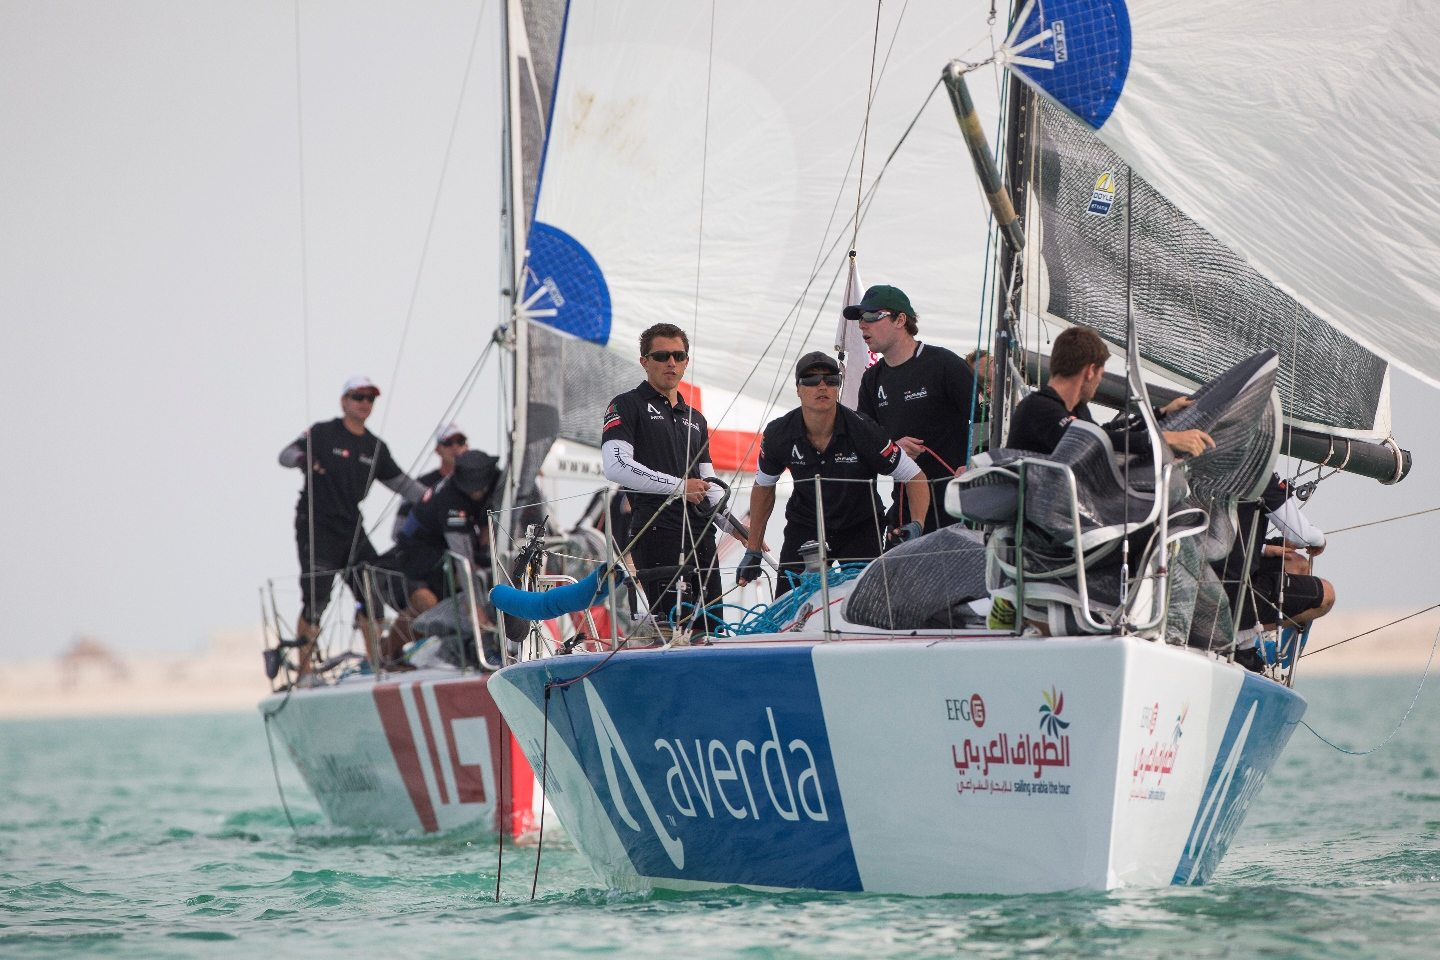 EFG Sailing Arabia The Tour 2015. Qatar. Doha.  Images free for editorial use.Credit: Lloyd